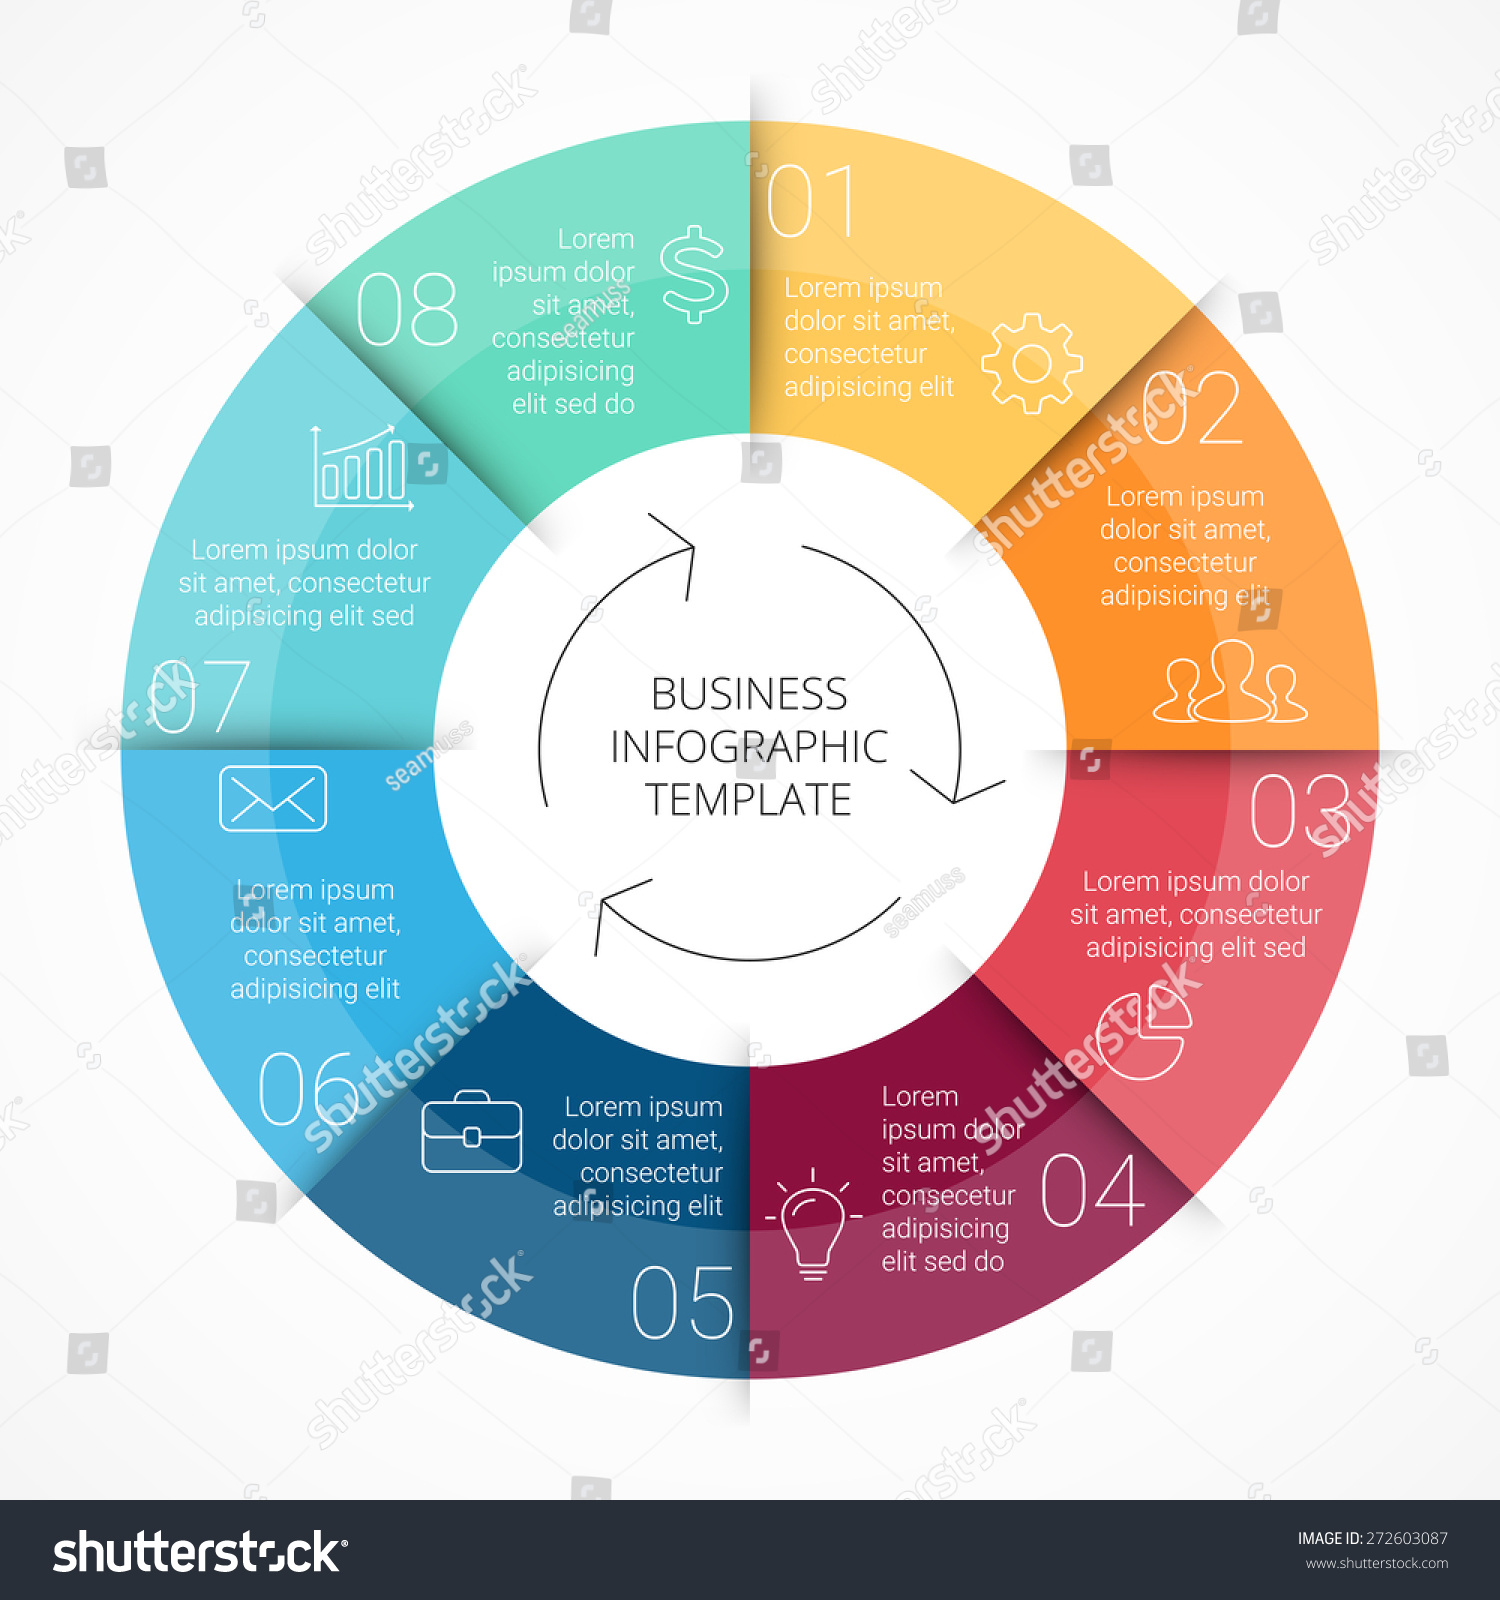 Vector circle color infographic template cycle stock vector vector circle color infographic template cycle stock vector 272603087 shutterstock nvjuhfo Images